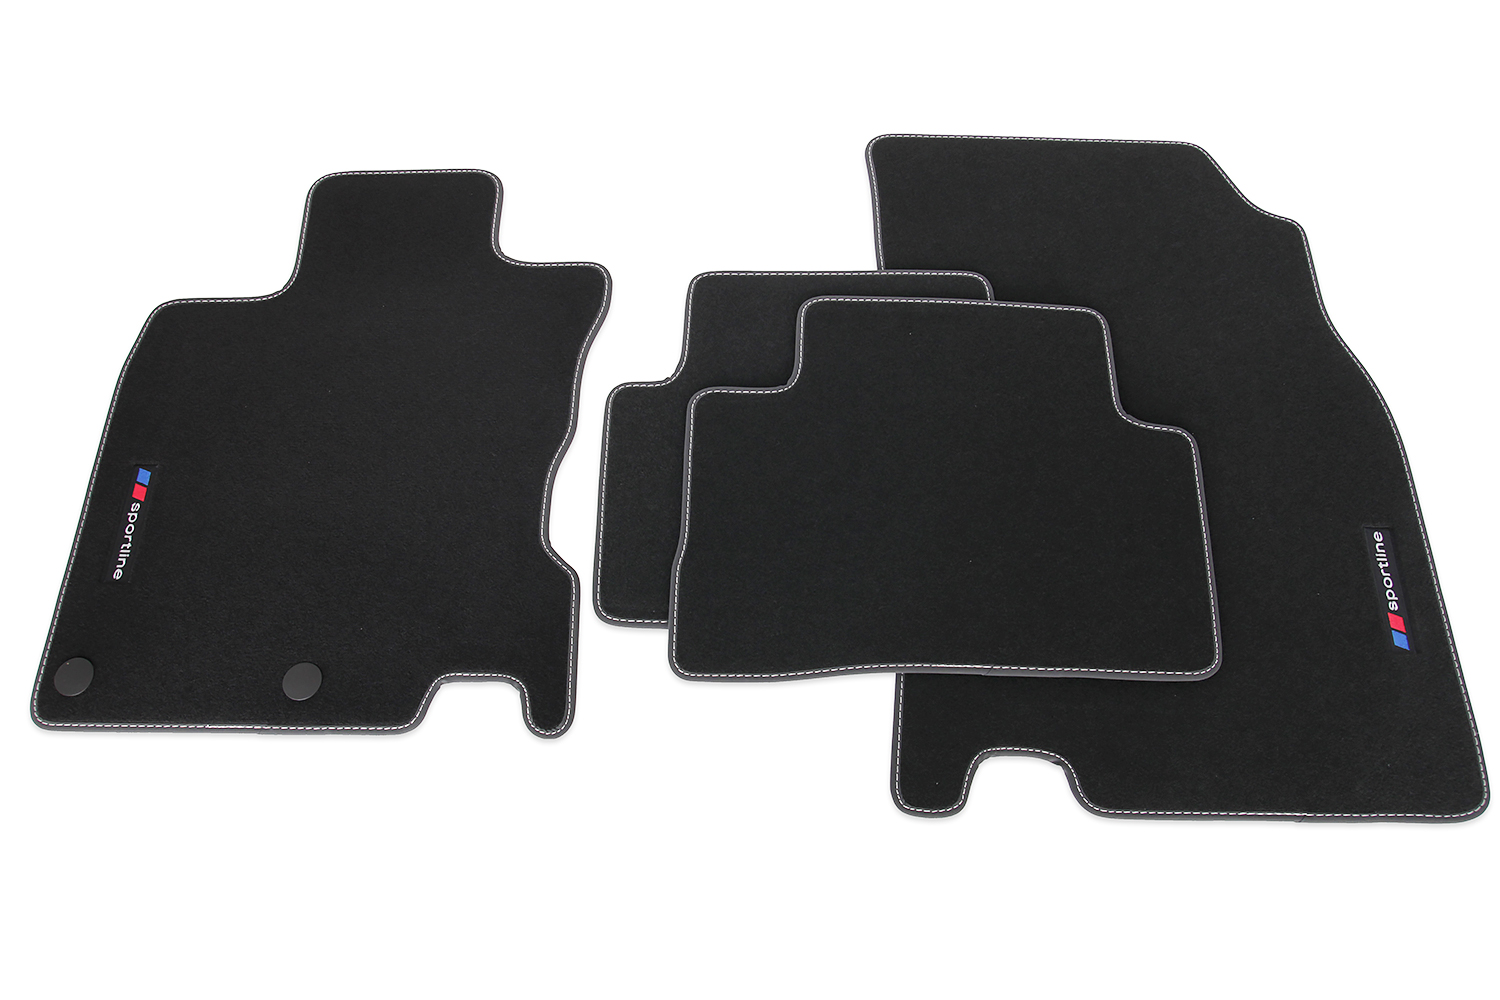 sportline tapis de sol adapt pour nissan qashqai 2 ii j11 ann e 2013 tapis de sol pour nissan. Black Bedroom Furniture Sets. Home Design Ideas